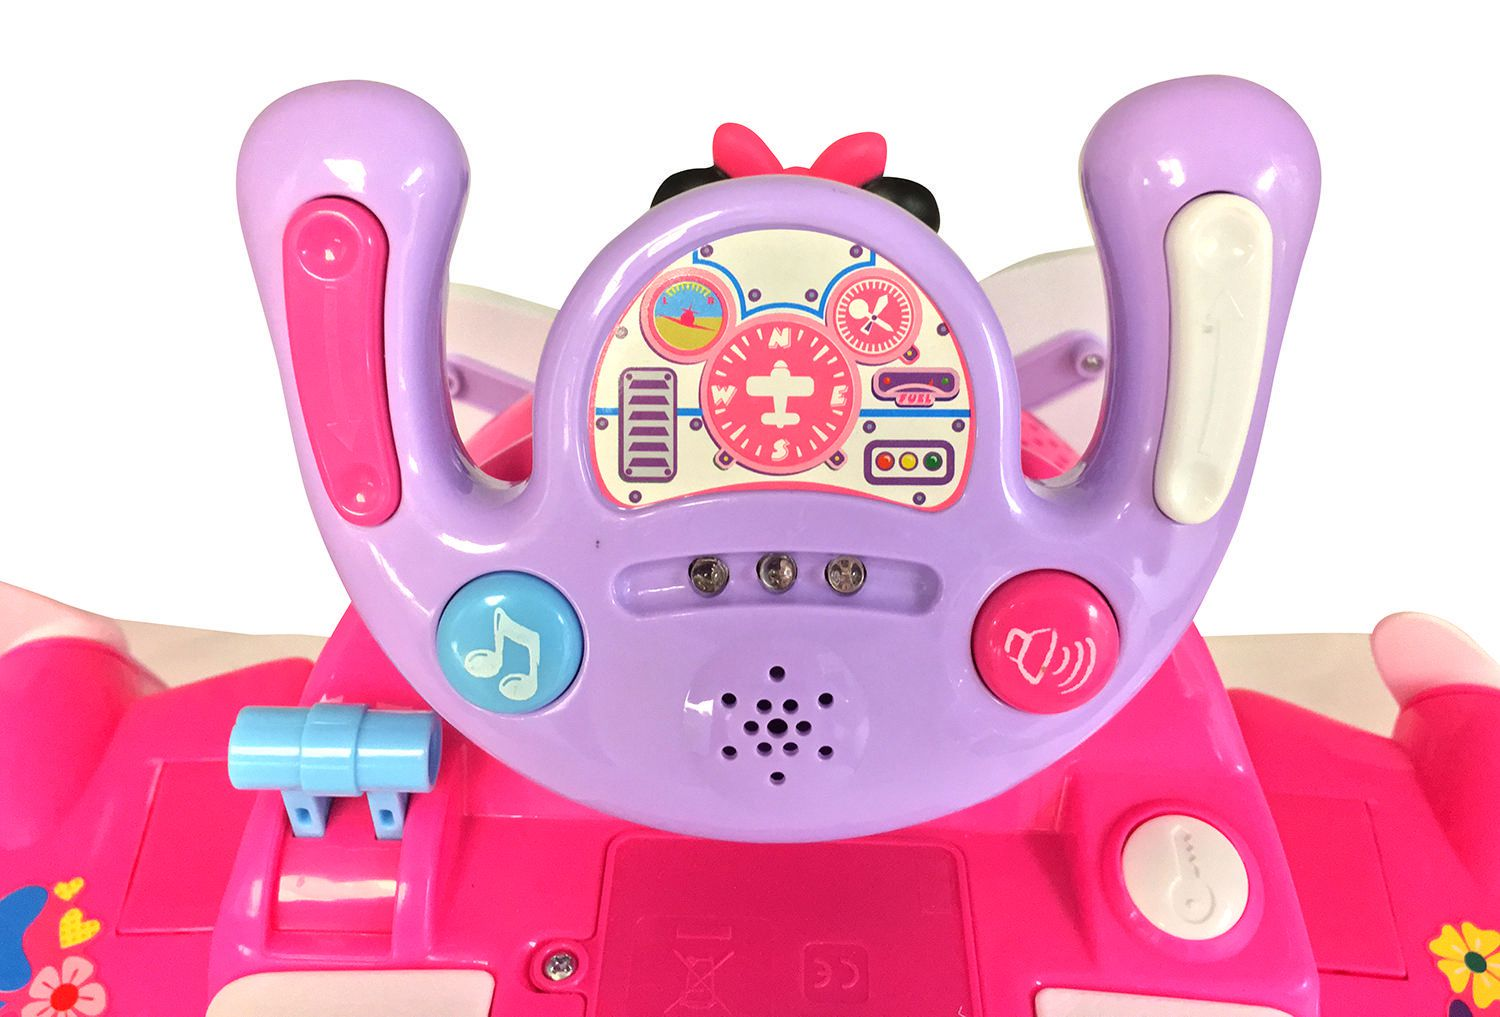 Baby Toddler Ride On Activity Ring 4 In 1 Minnie Plane Musical Push Along